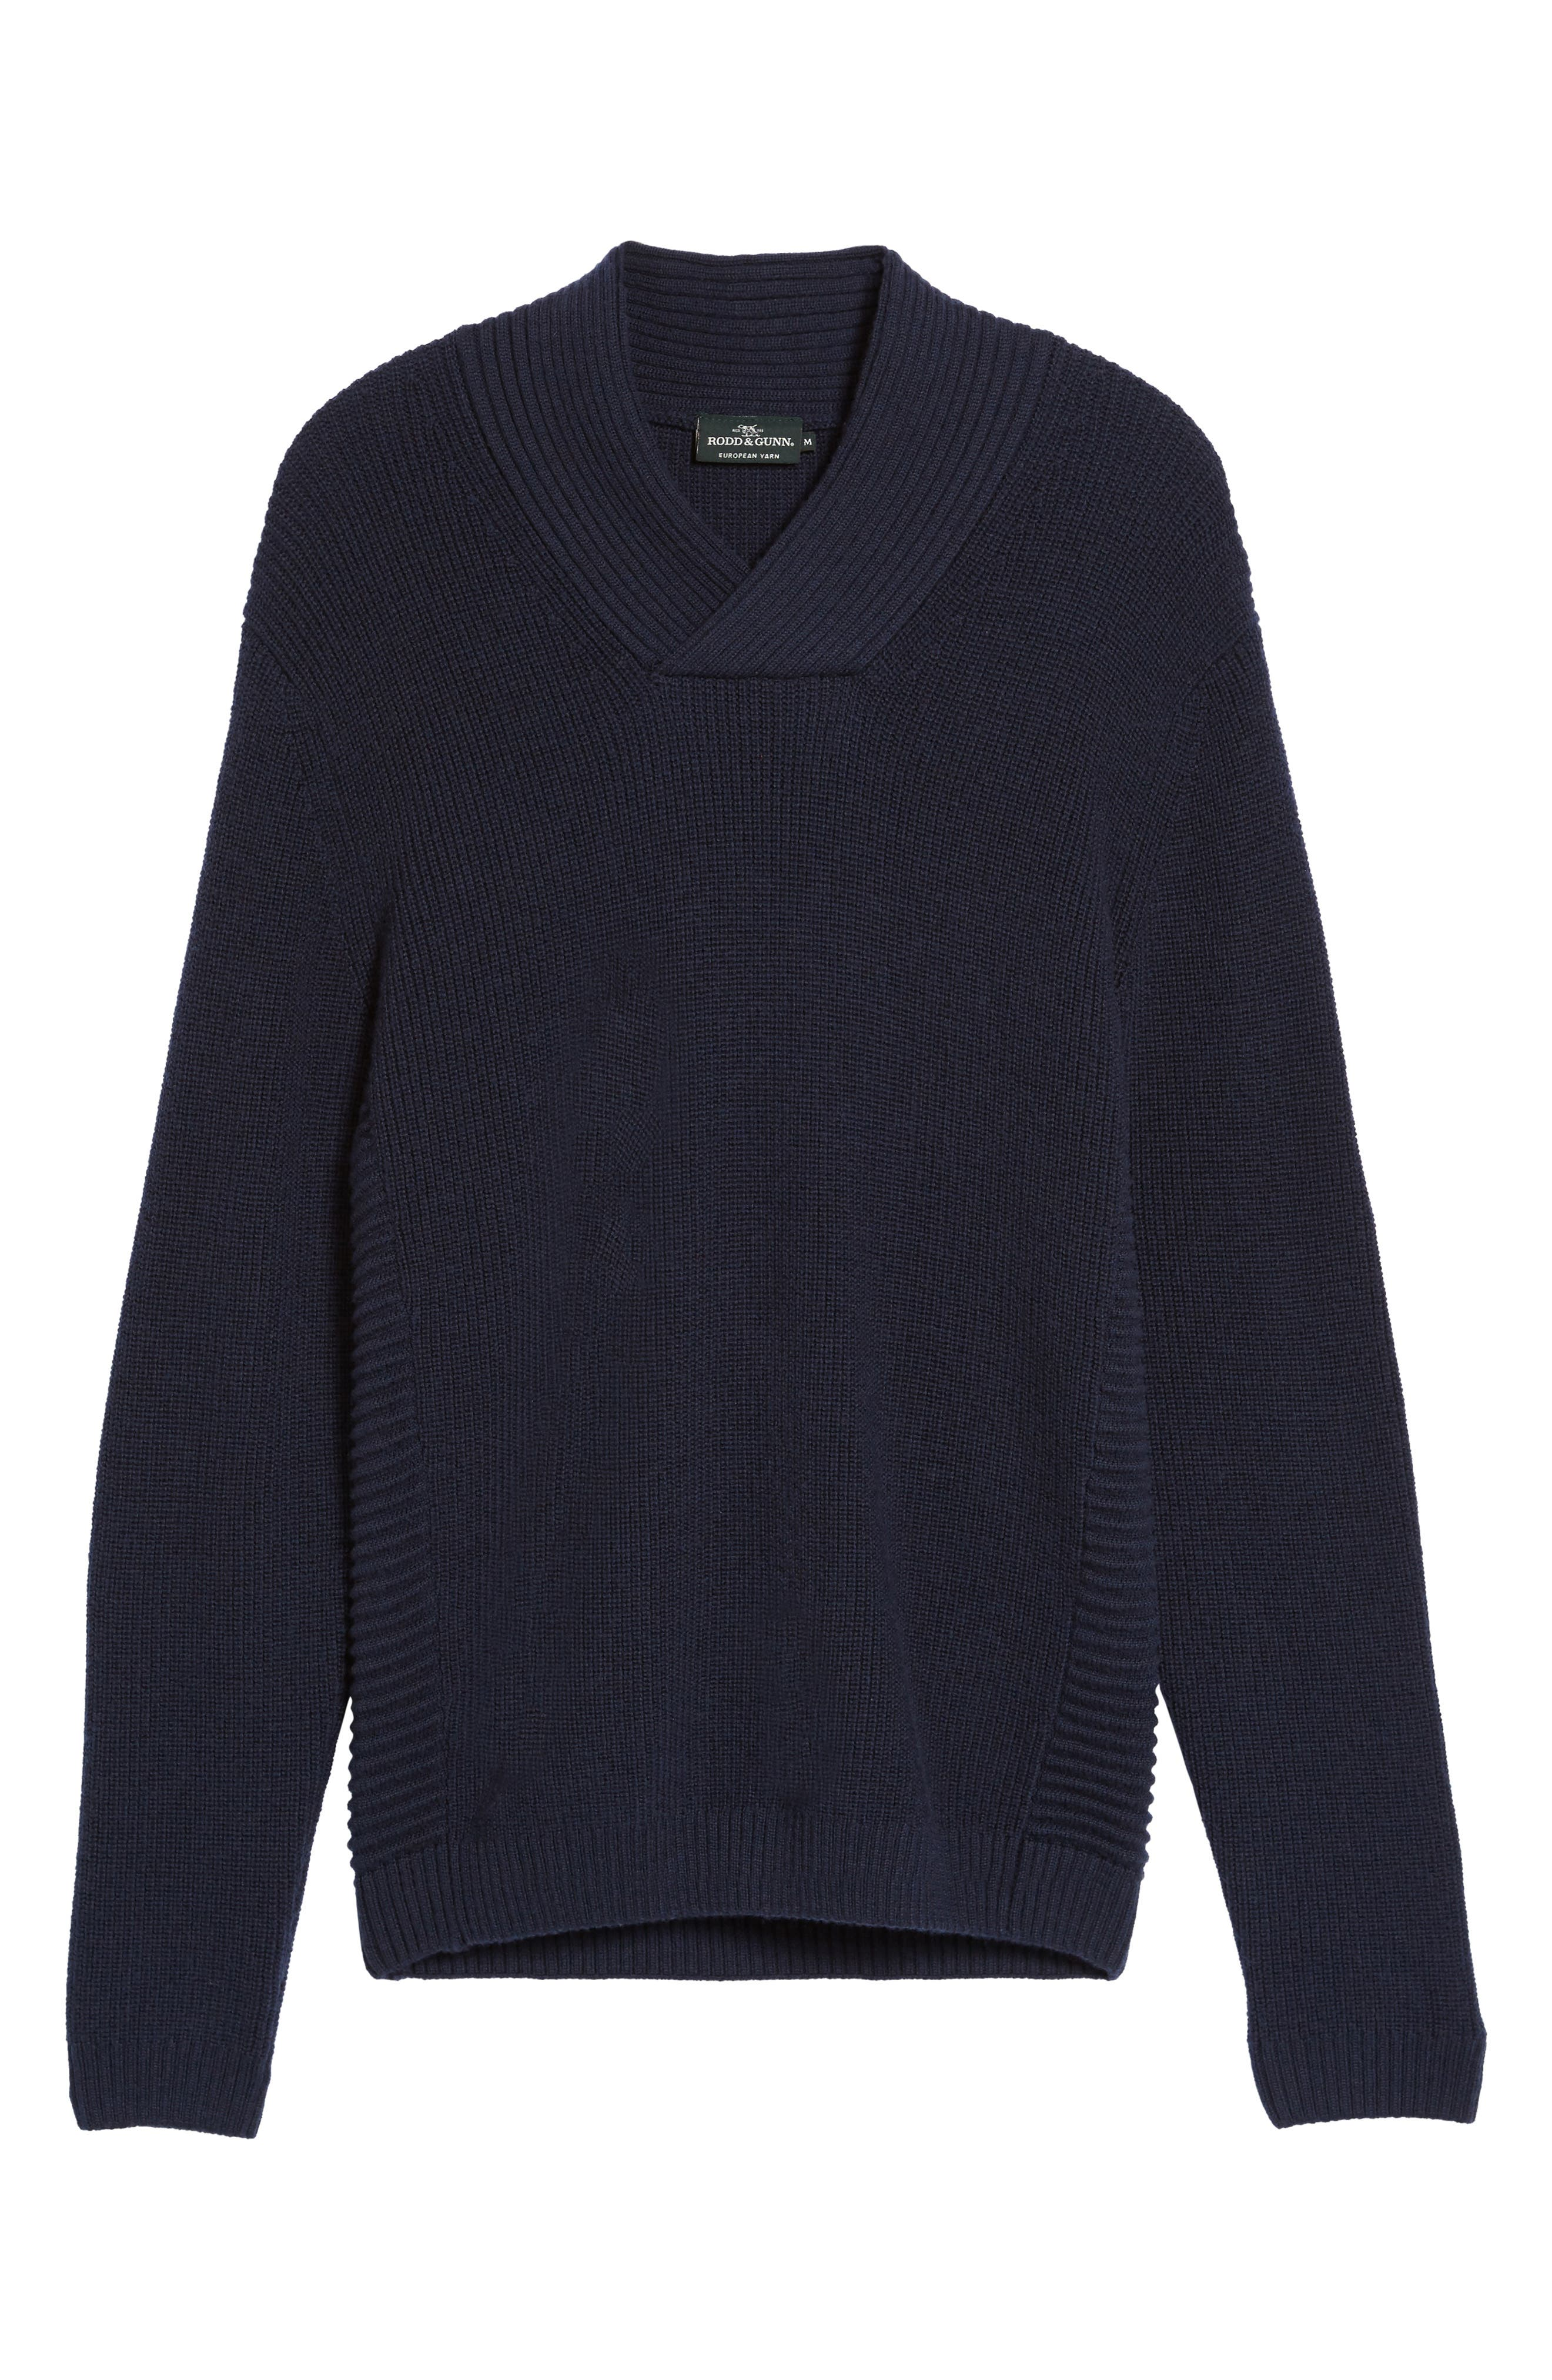 Charlesworth Suede Patch Merino Wool Sweater,                             Alternate thumbnail 6, color,                             432